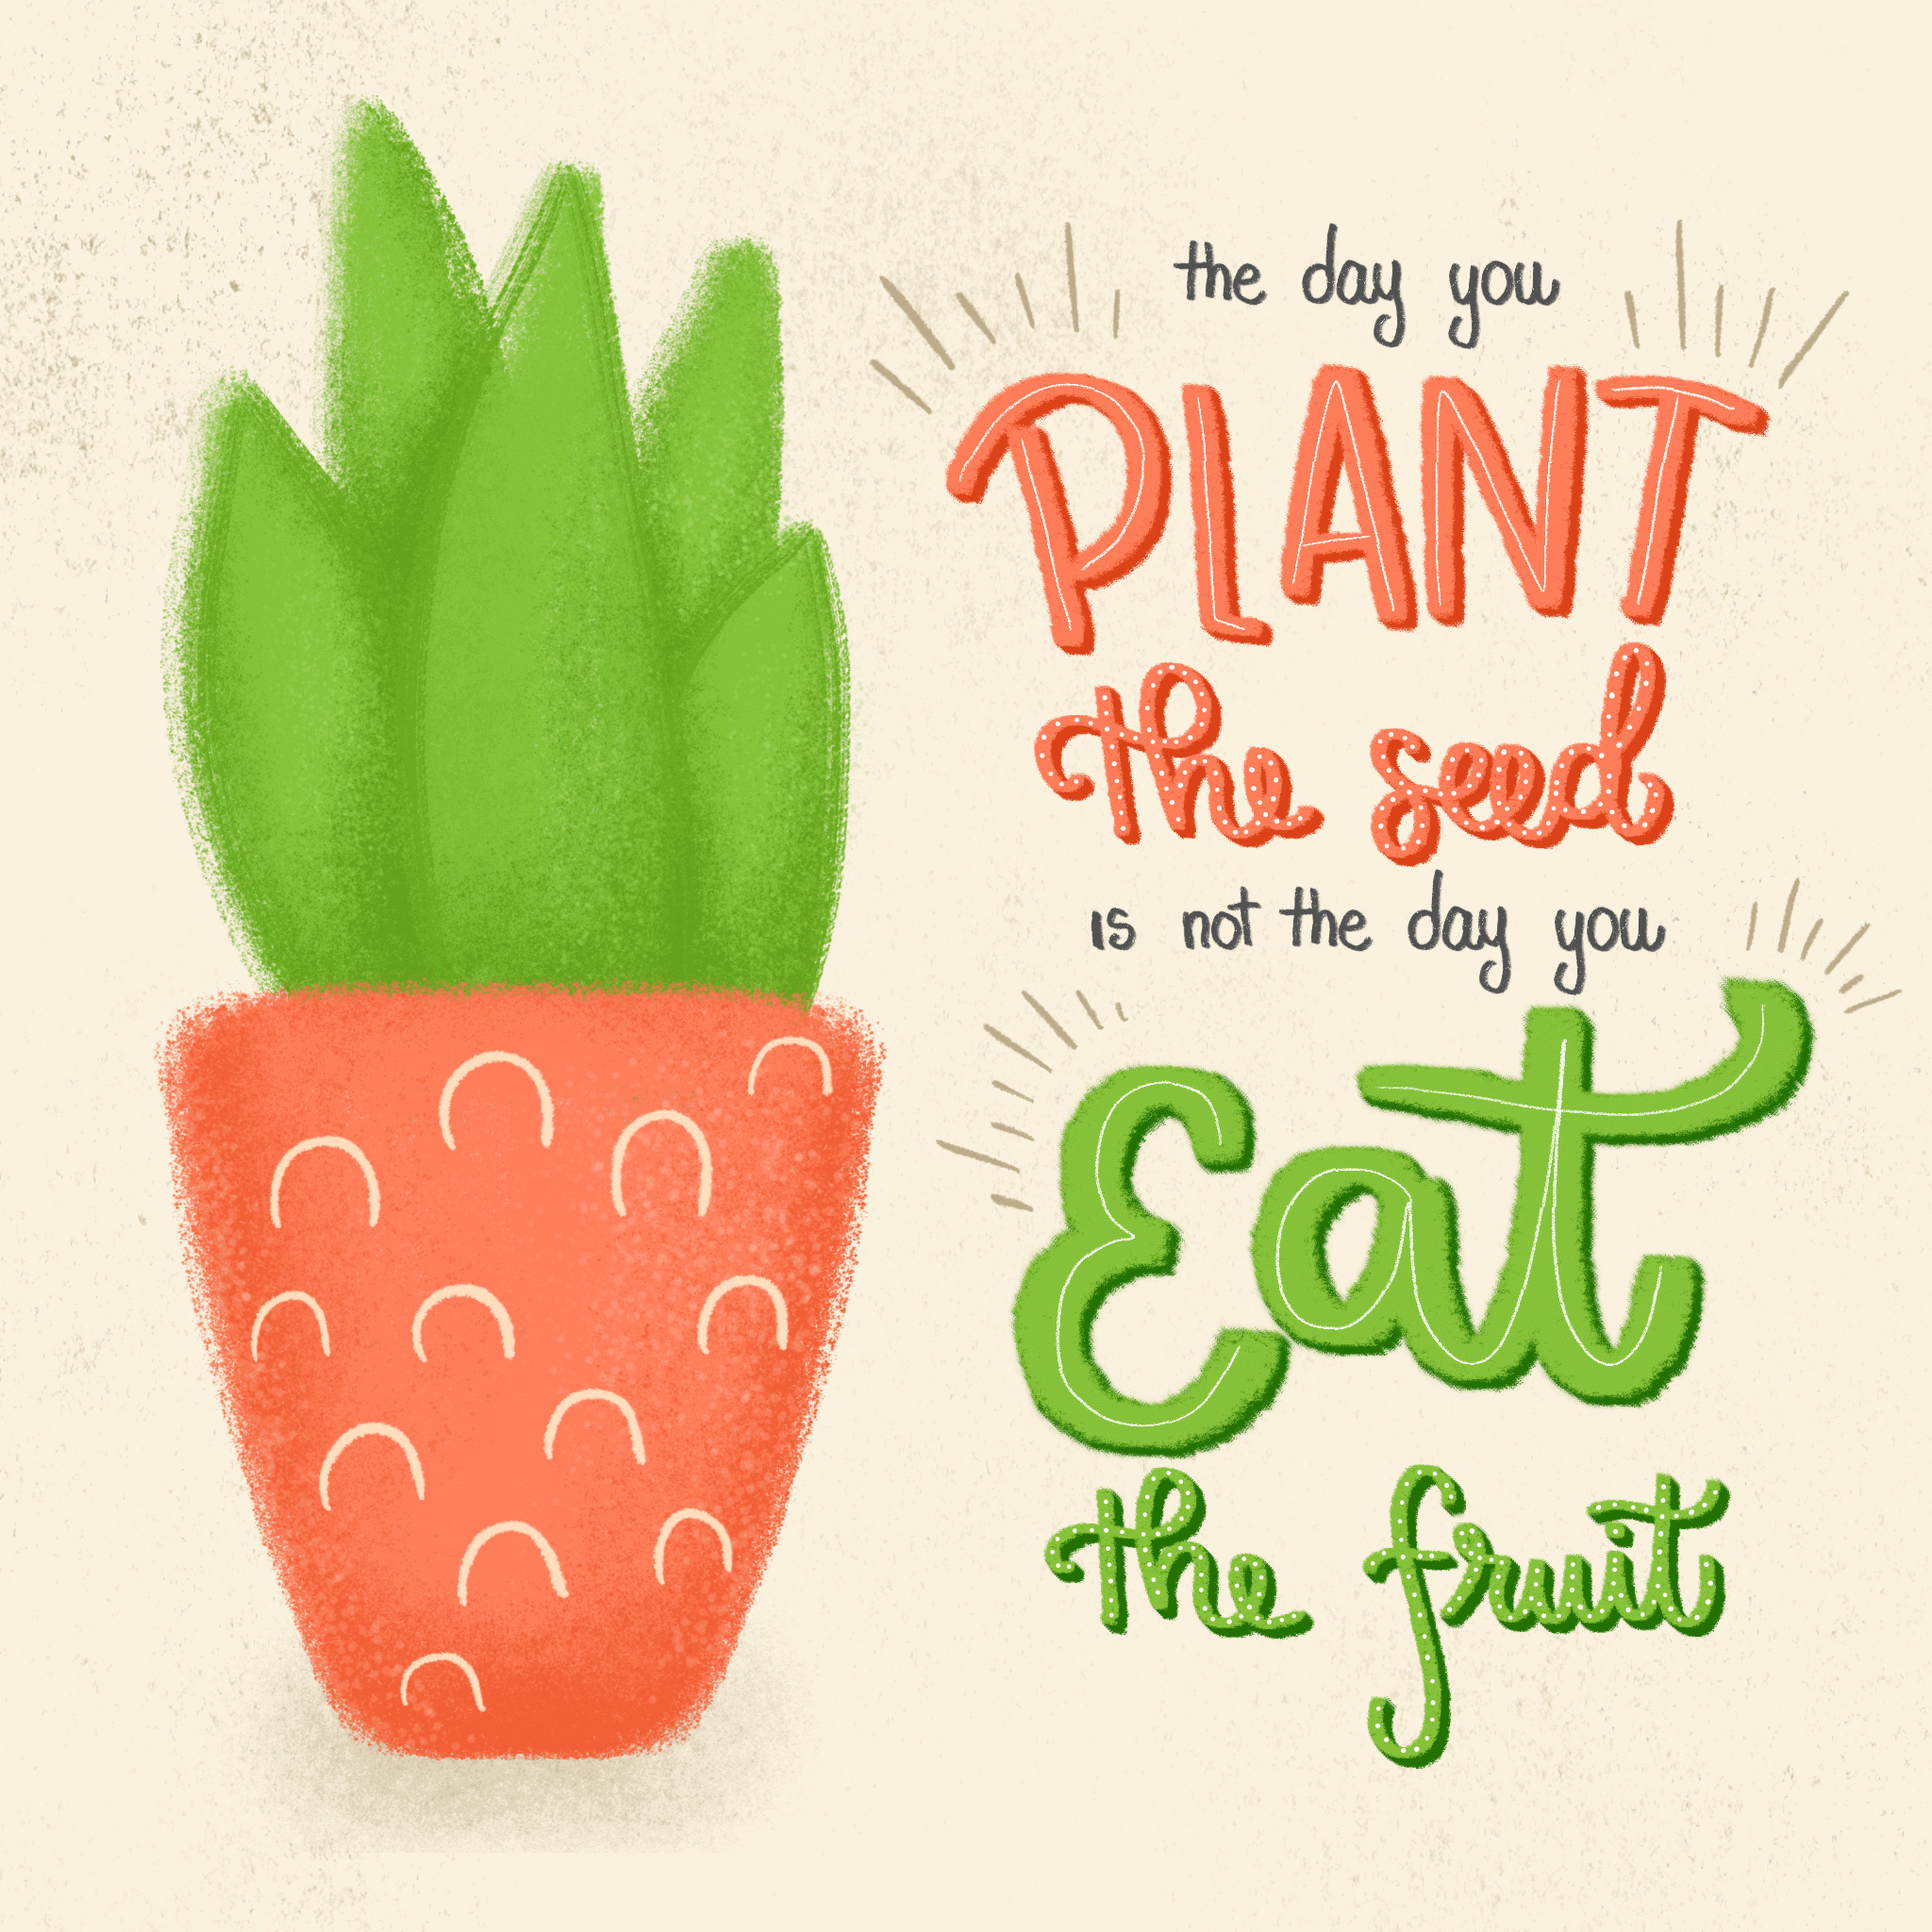 the-day-you-plant-the-seed-its-not-the-day-you-eat-the-fruit